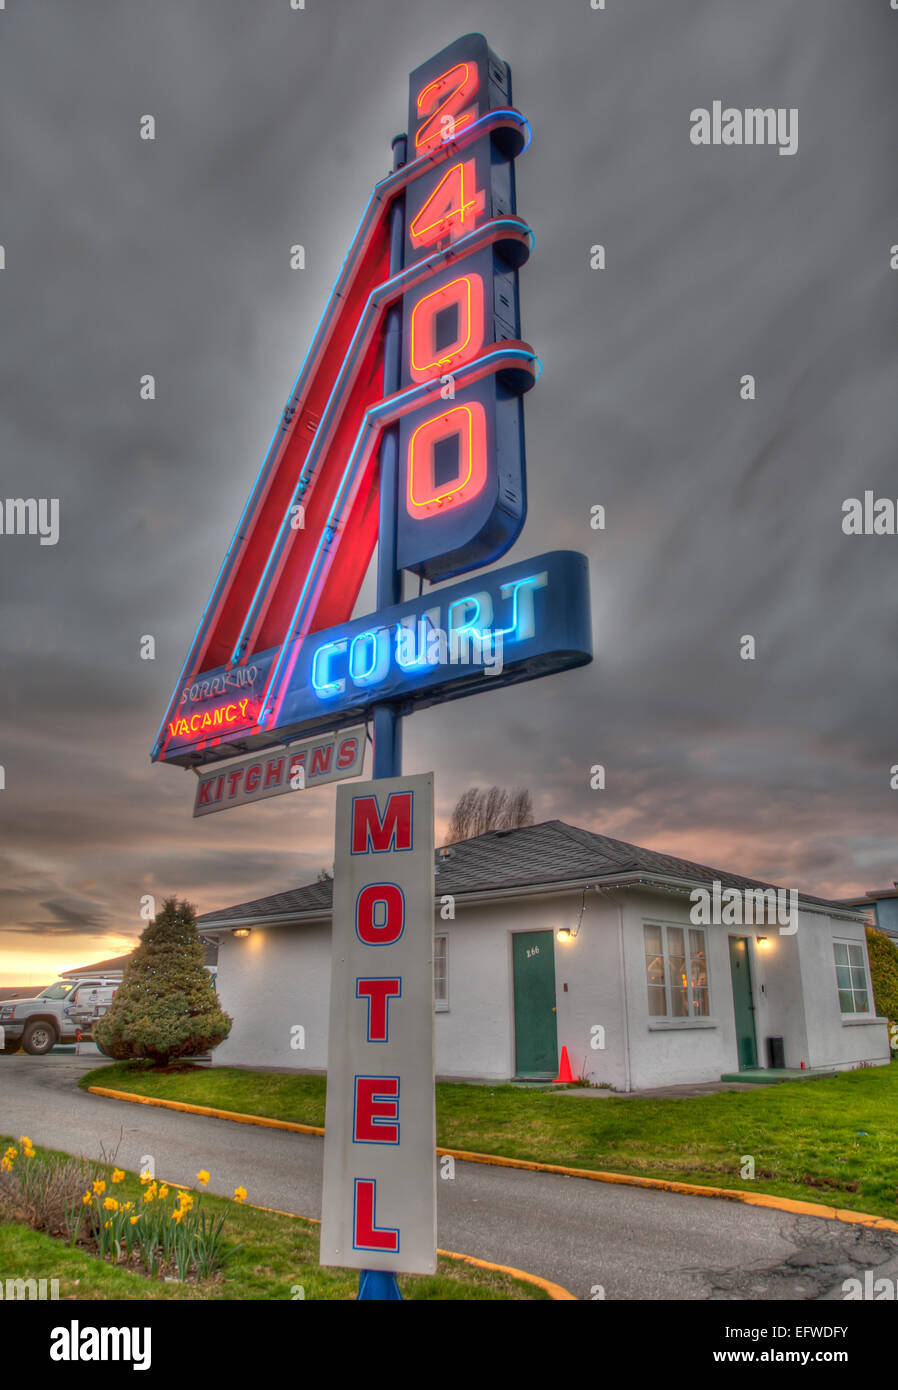 HDR imag of a neon sign at an old motel, Vancouver, BC - Stock Image